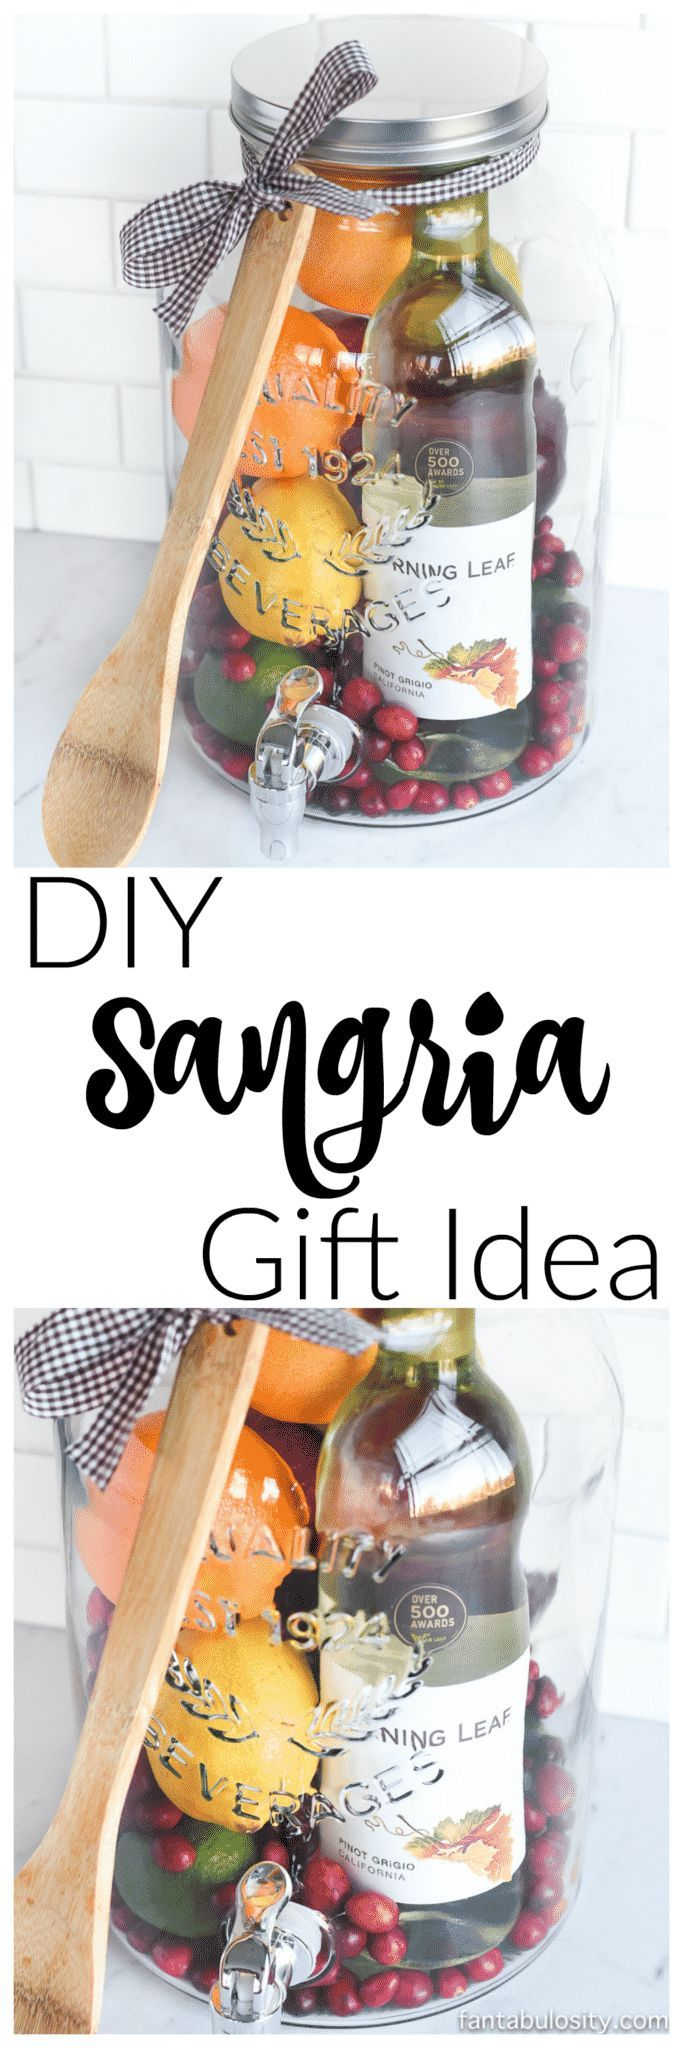 DIY Gift Idea: Sangria Kit - Great for Friends, Housewarming & More!